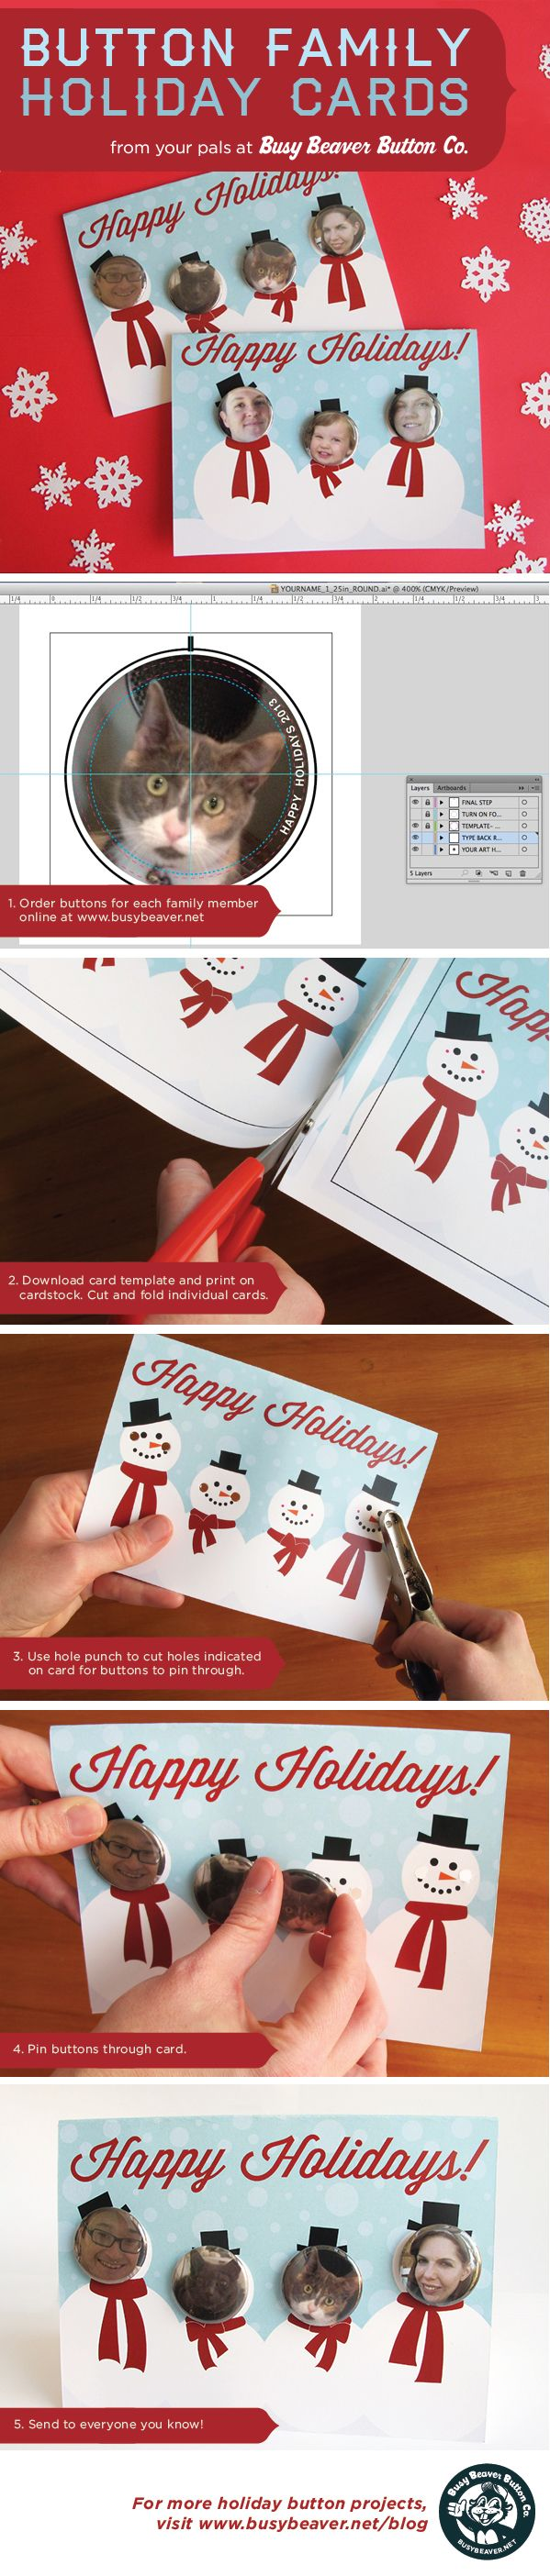 Button Family Holiday Cards - Fun holiday card DIY project with buttons for each family member. Full project instructions at the link!